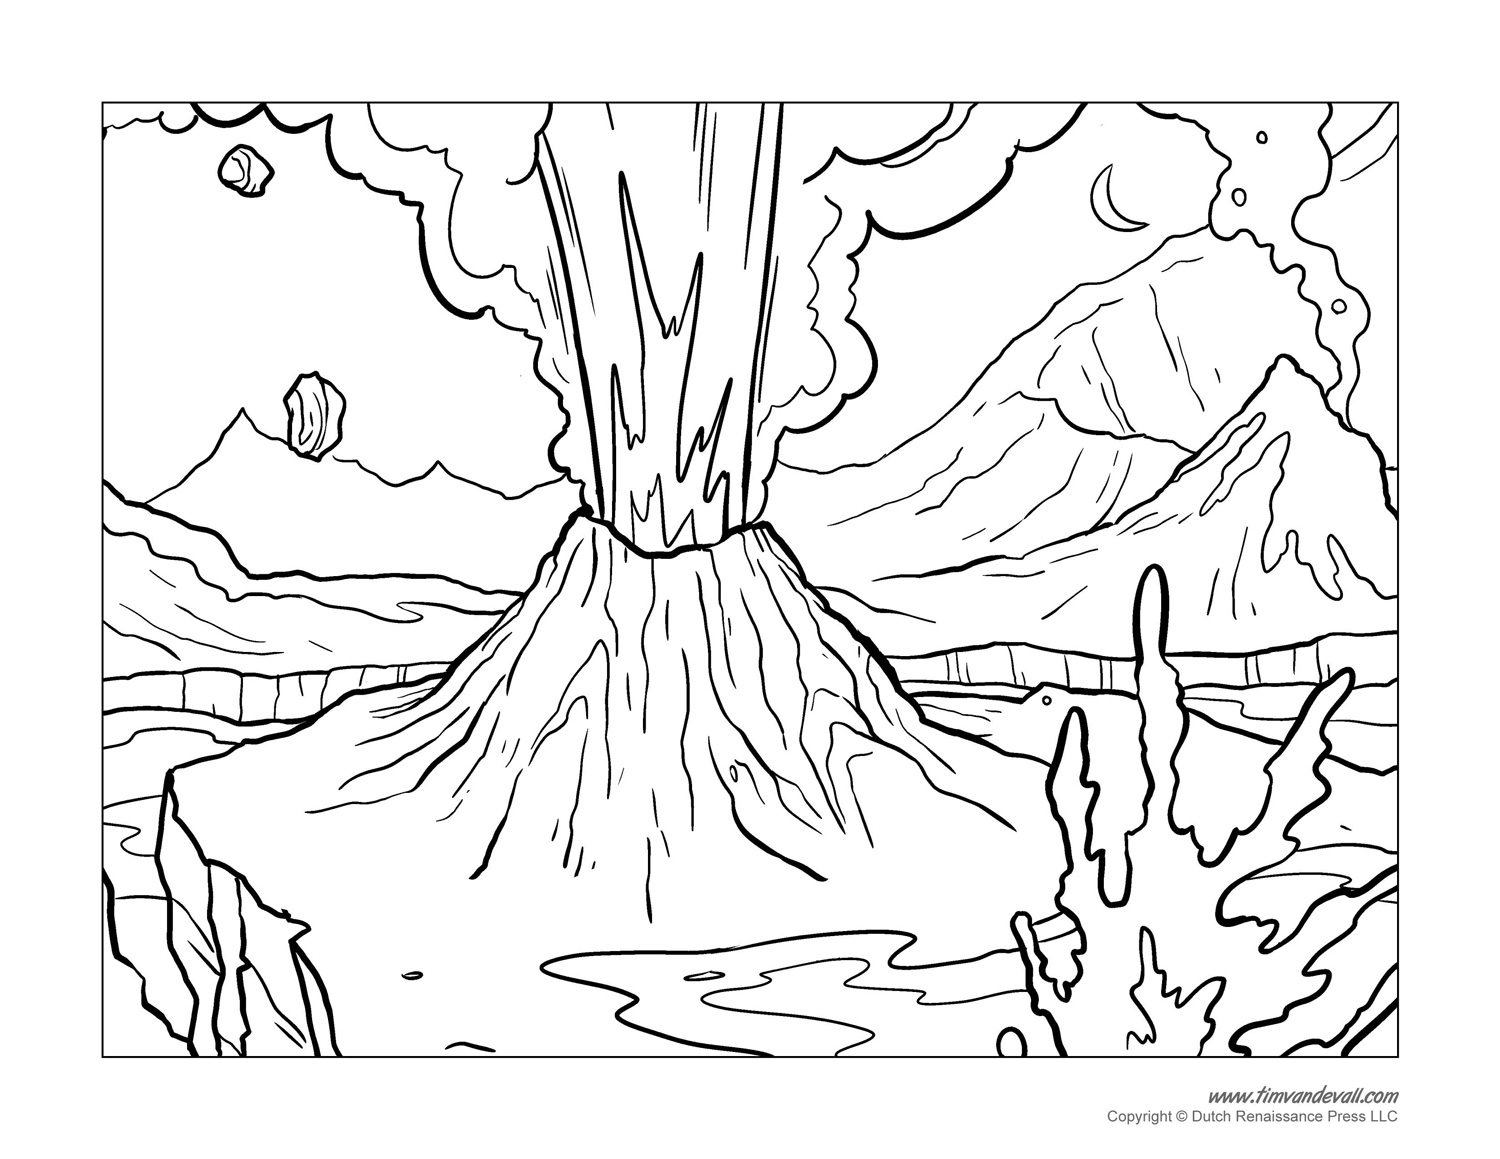 volcano coloring pages to print volcano coloring pictures volcano to coloring pages print